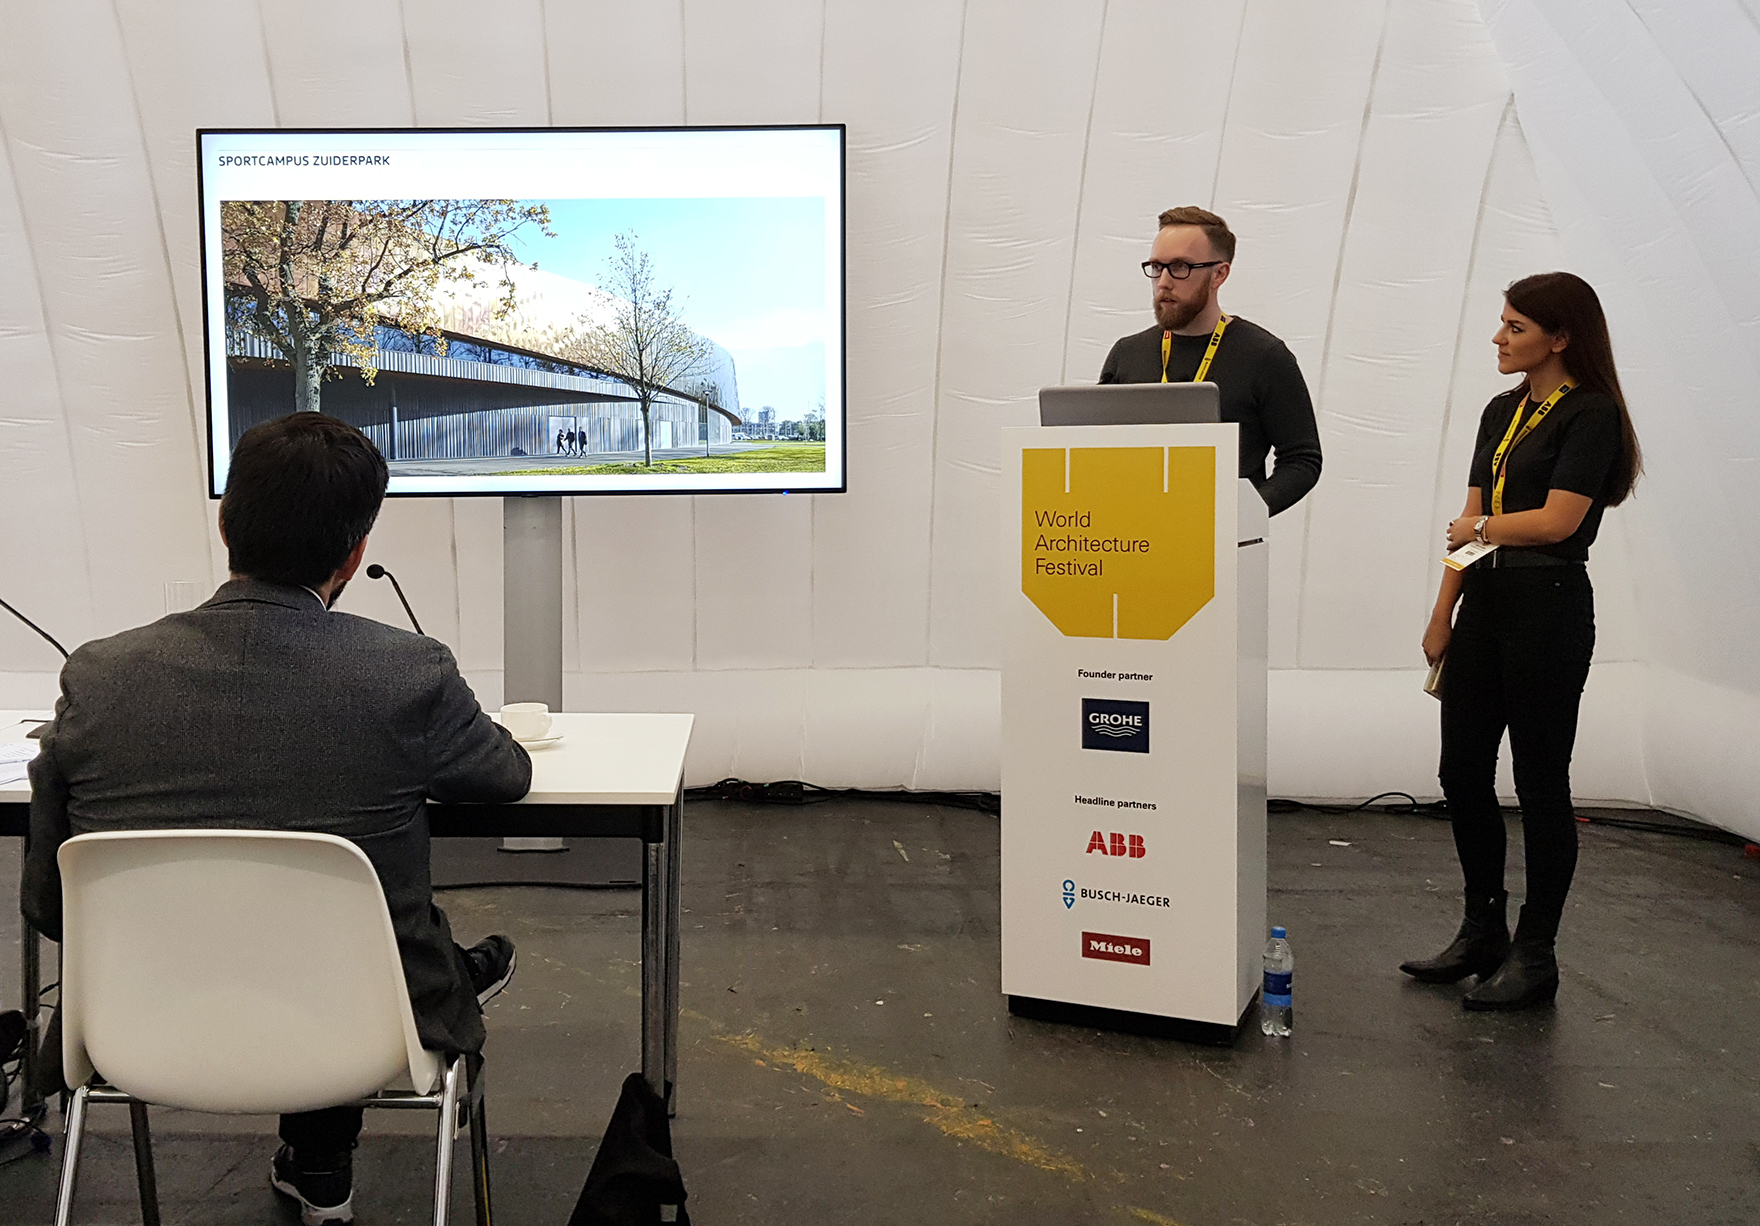 Sportcampus Zuiderpark Highly Commended Sports Building At World Architecture Festival 2 Lh